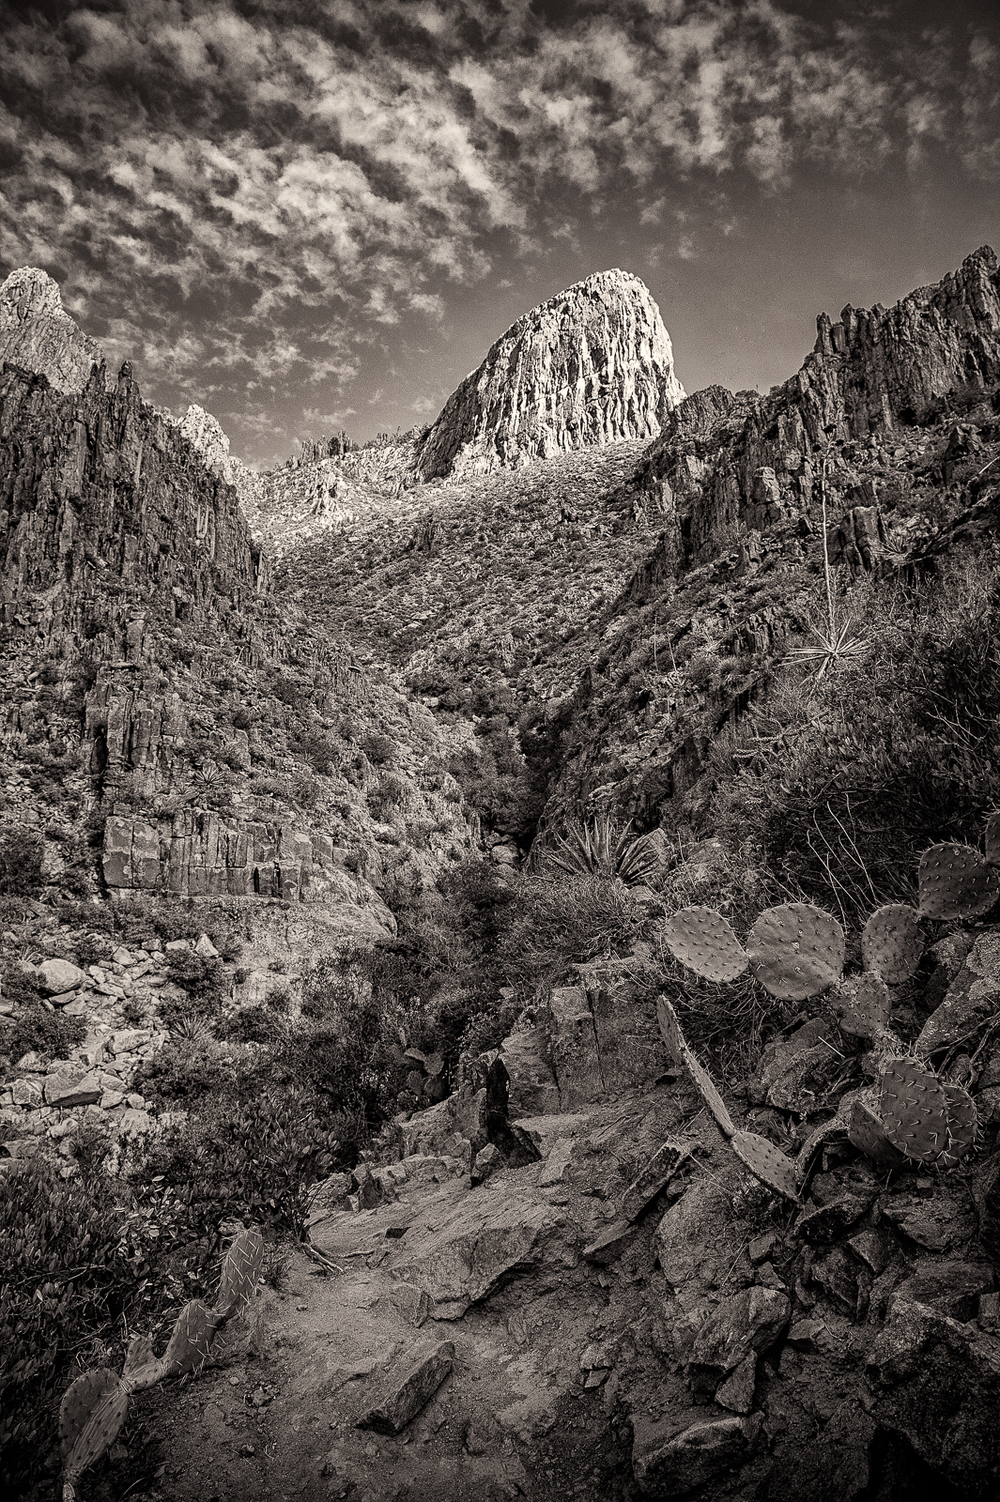 Heart of the Superstitions